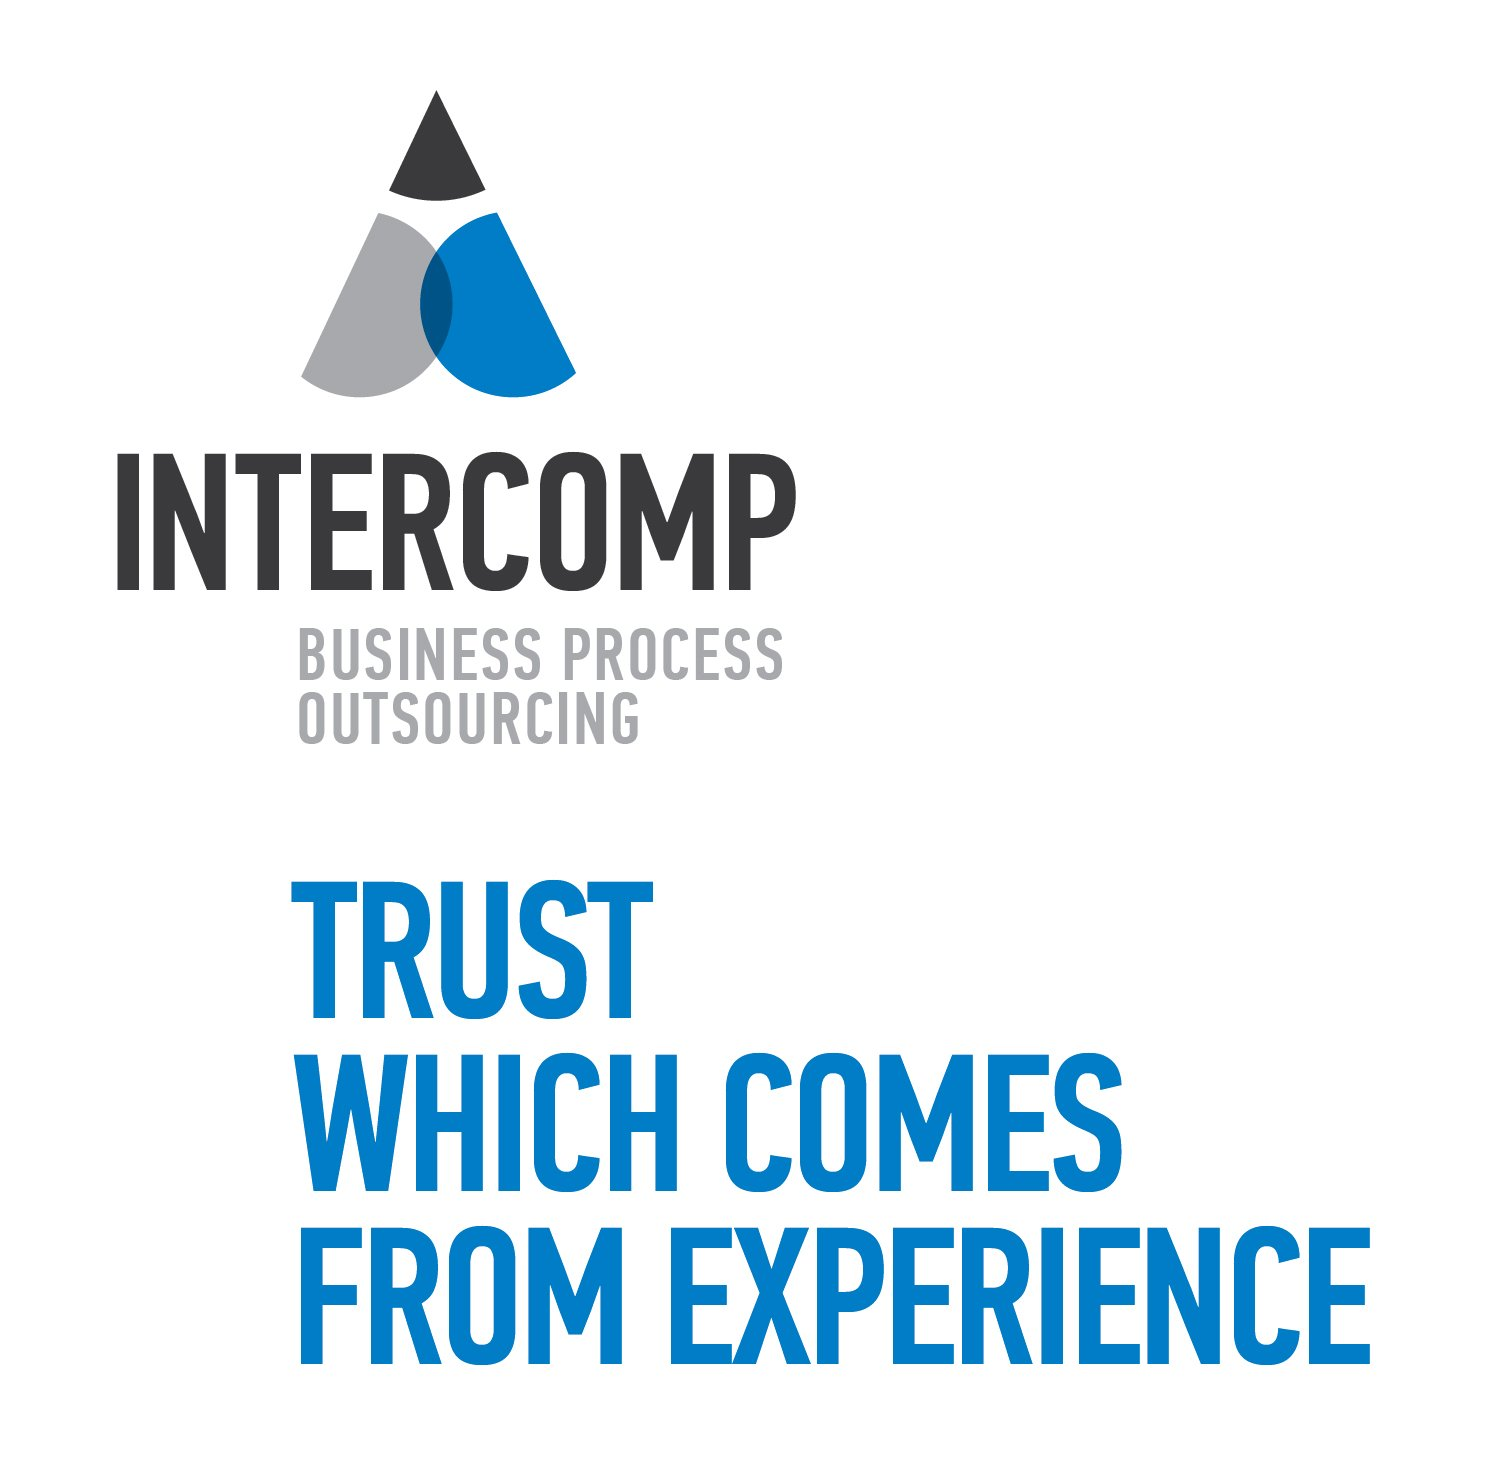 Intercomp announces completion of company rebranding